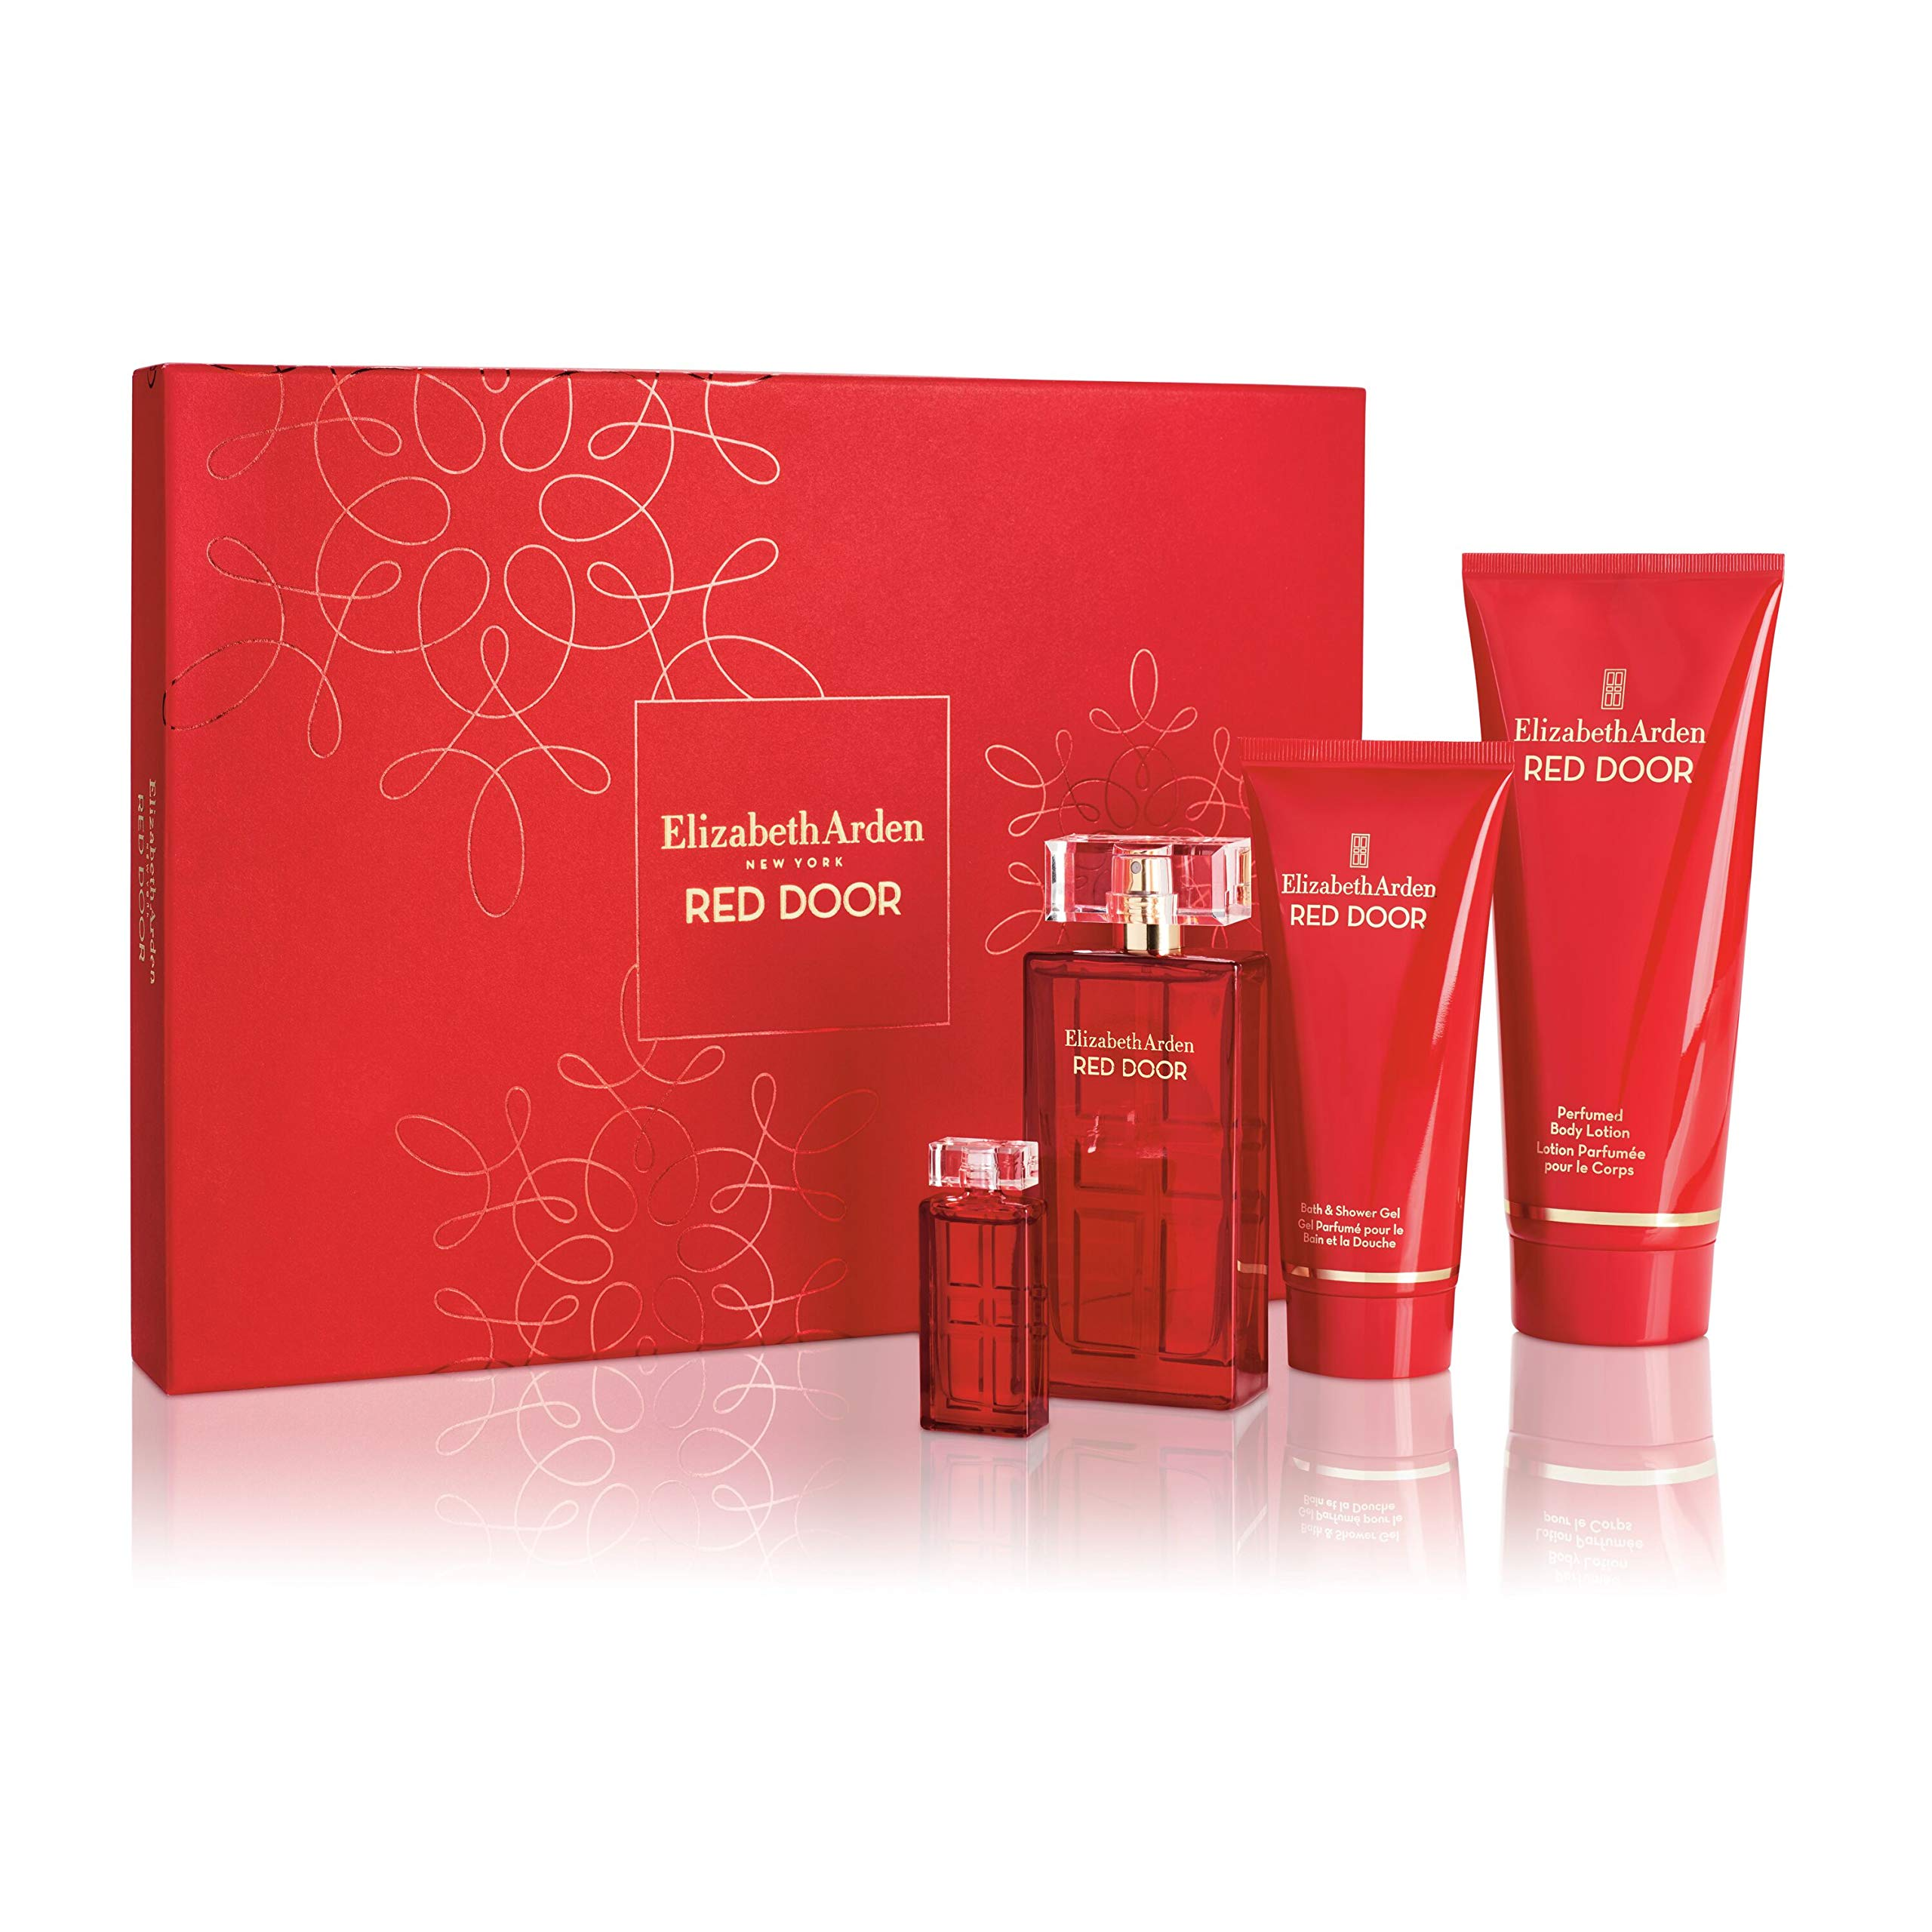 Elizabeth Arden Red Door 4 Piece Fragrance Gift Set, Perfume for Women, 4 ct. by Elizabeth Arden